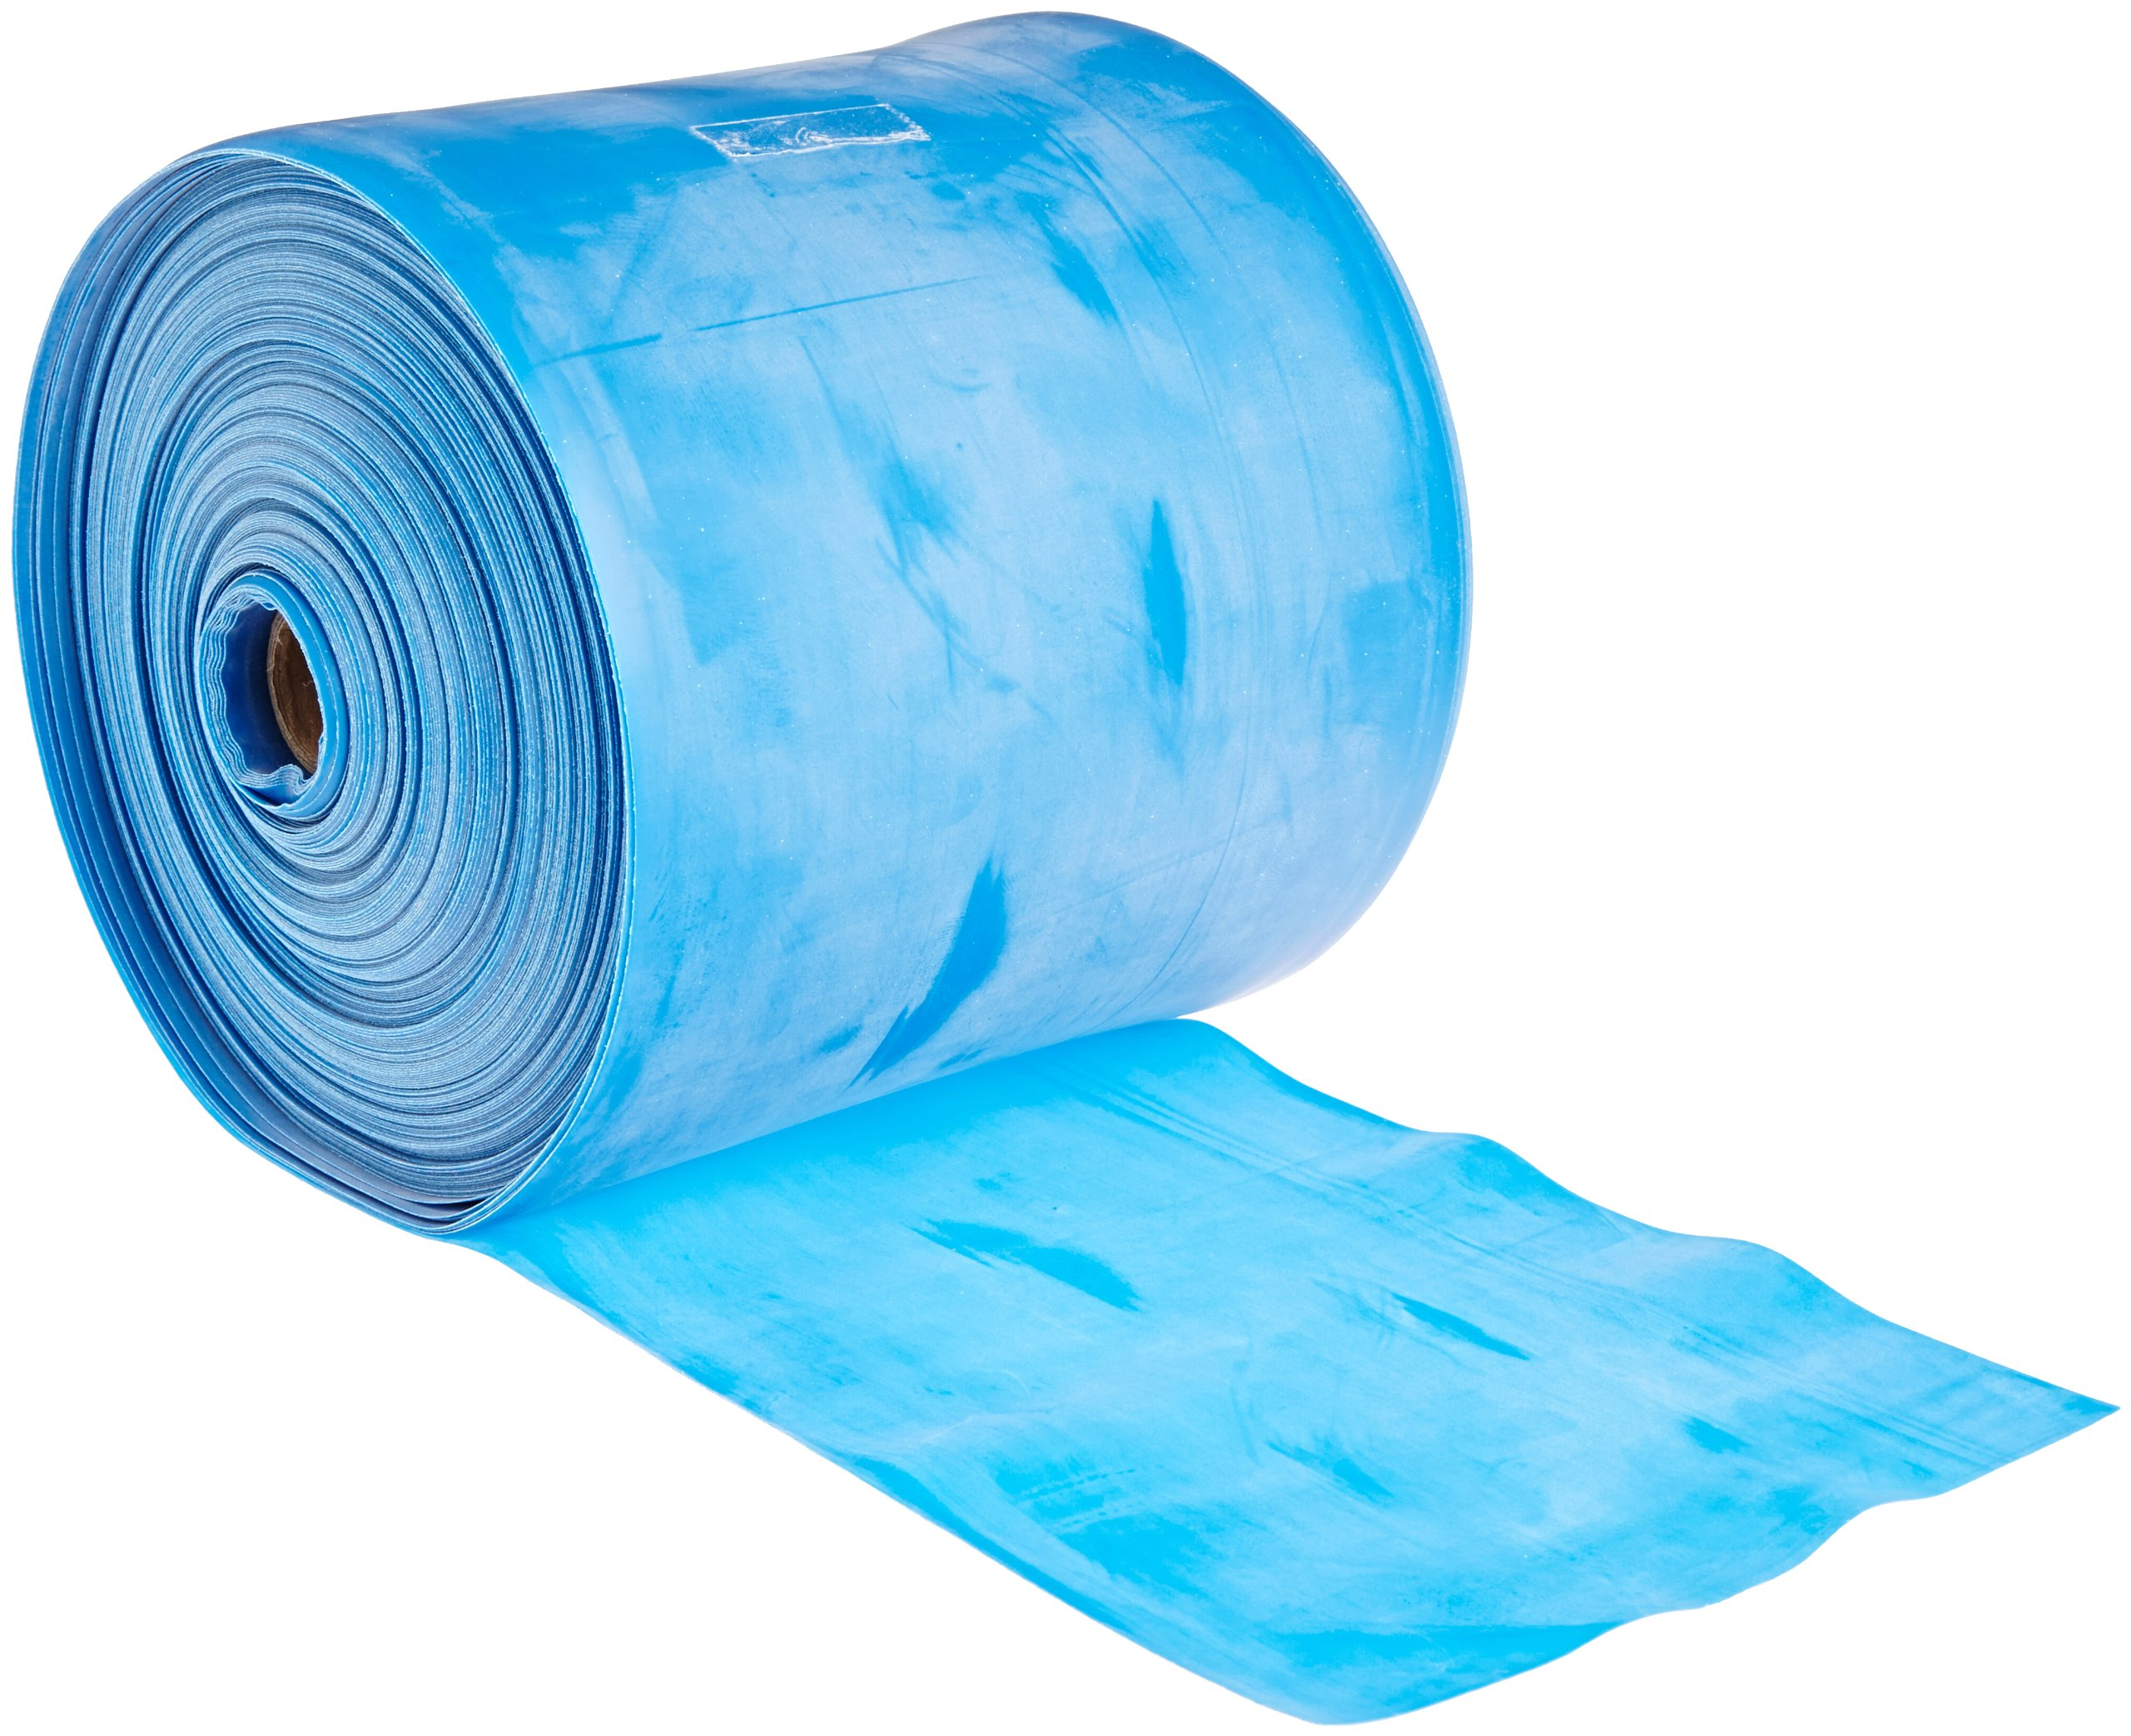 Cando 10-5224 Blue Low Powder Latex Exercise Band, Heavy Resistance, 50 yd Length